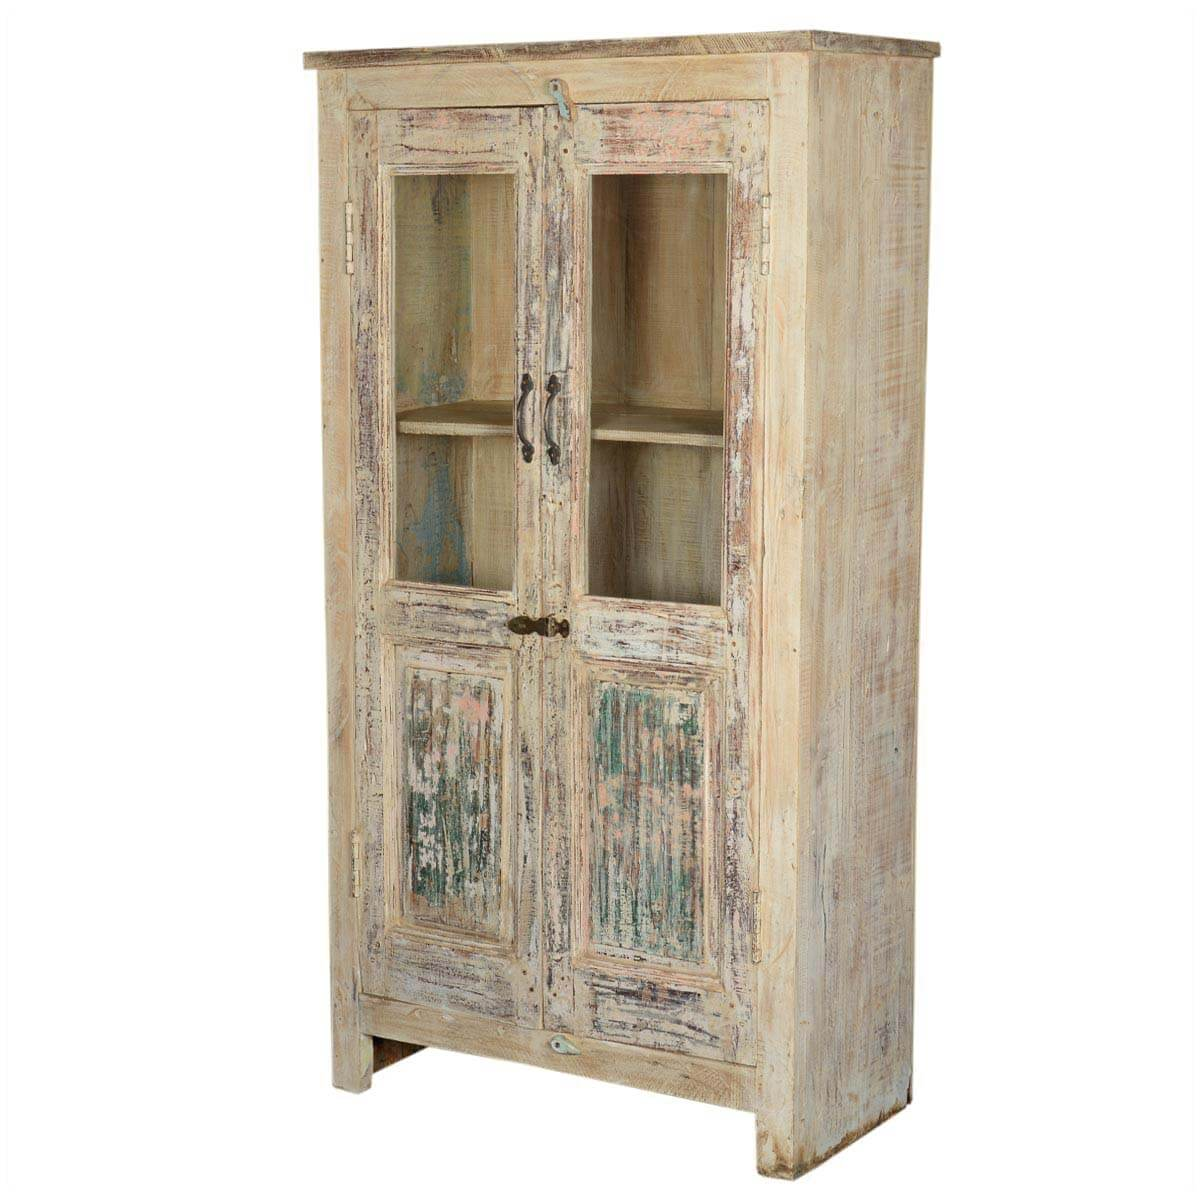 Marvelous photograph of Door Reclaimed Wood Tall Storage Cabinet with #AB7620 color and 1200x1200 pixels